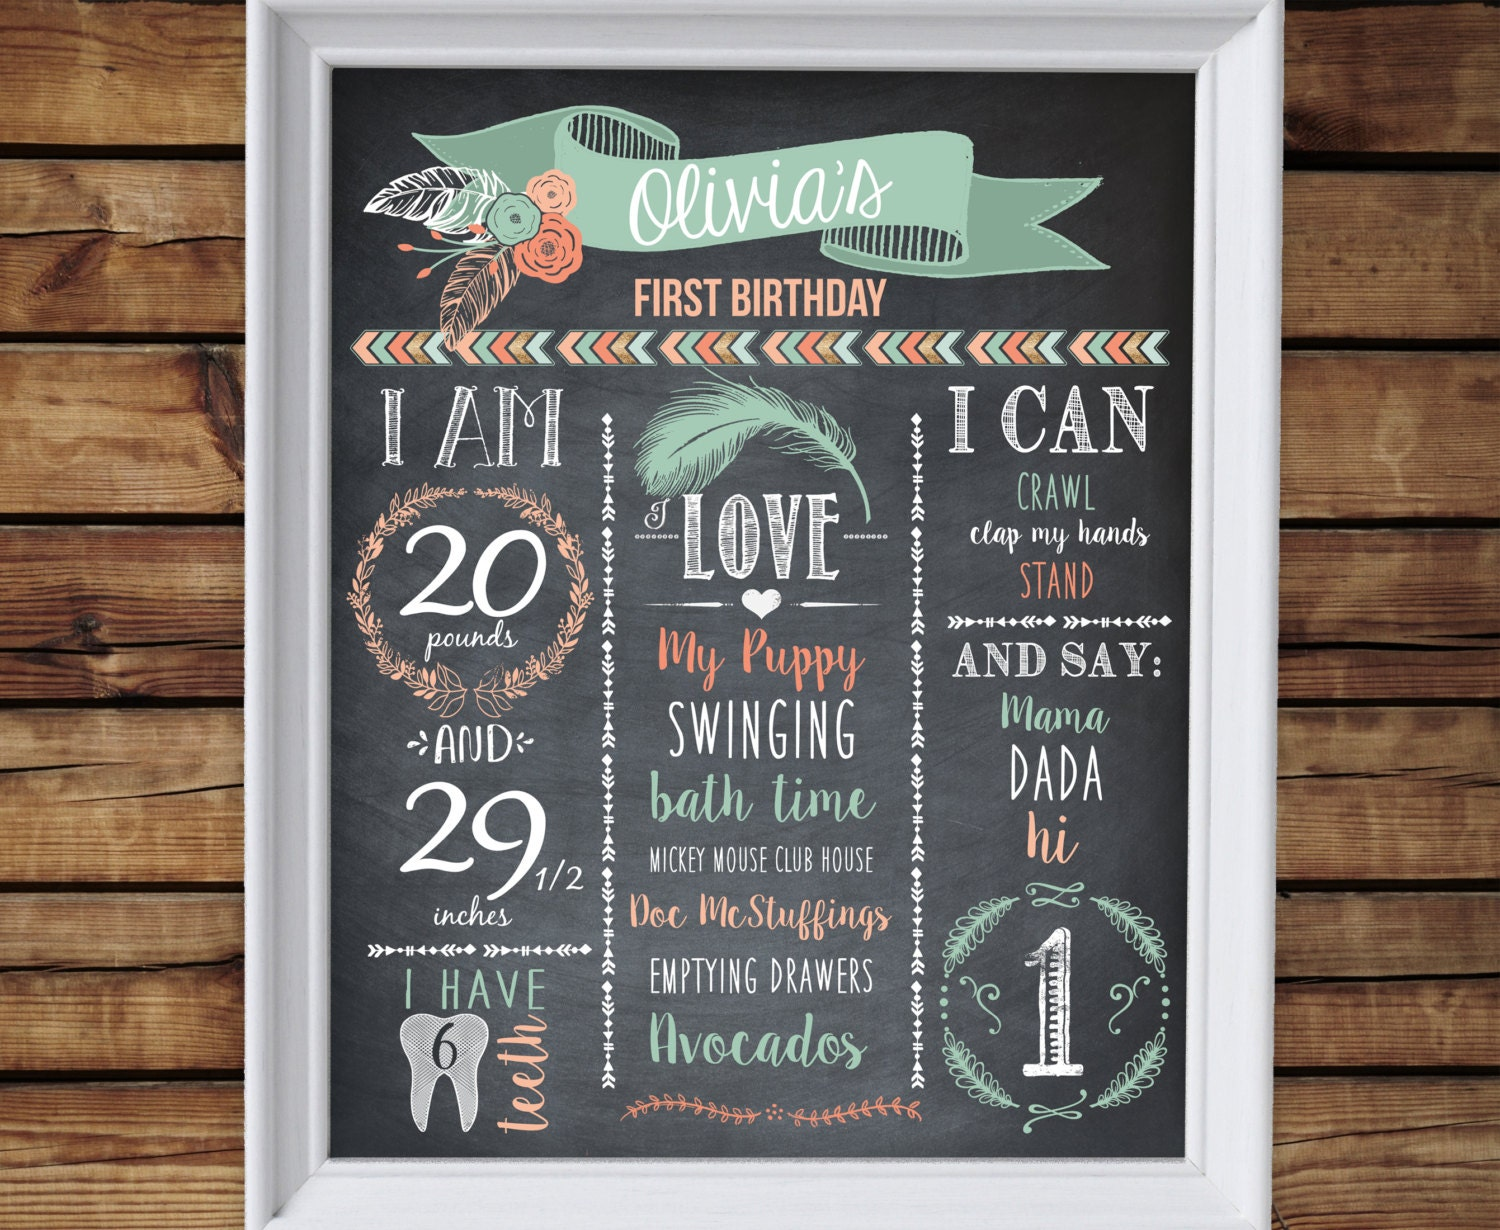 Personalized First 1st Birthday Chalkboard Sign Wild One. Fillable Family Tree Template. Pajama Party Theme. Wedding Web Template Free. Red Youtube Banner Template. Apple Pages Resume Template. Kean University Graduate Programs. University Of Chicago Graduate School Acceptance Rate. Child Id Card Template Free